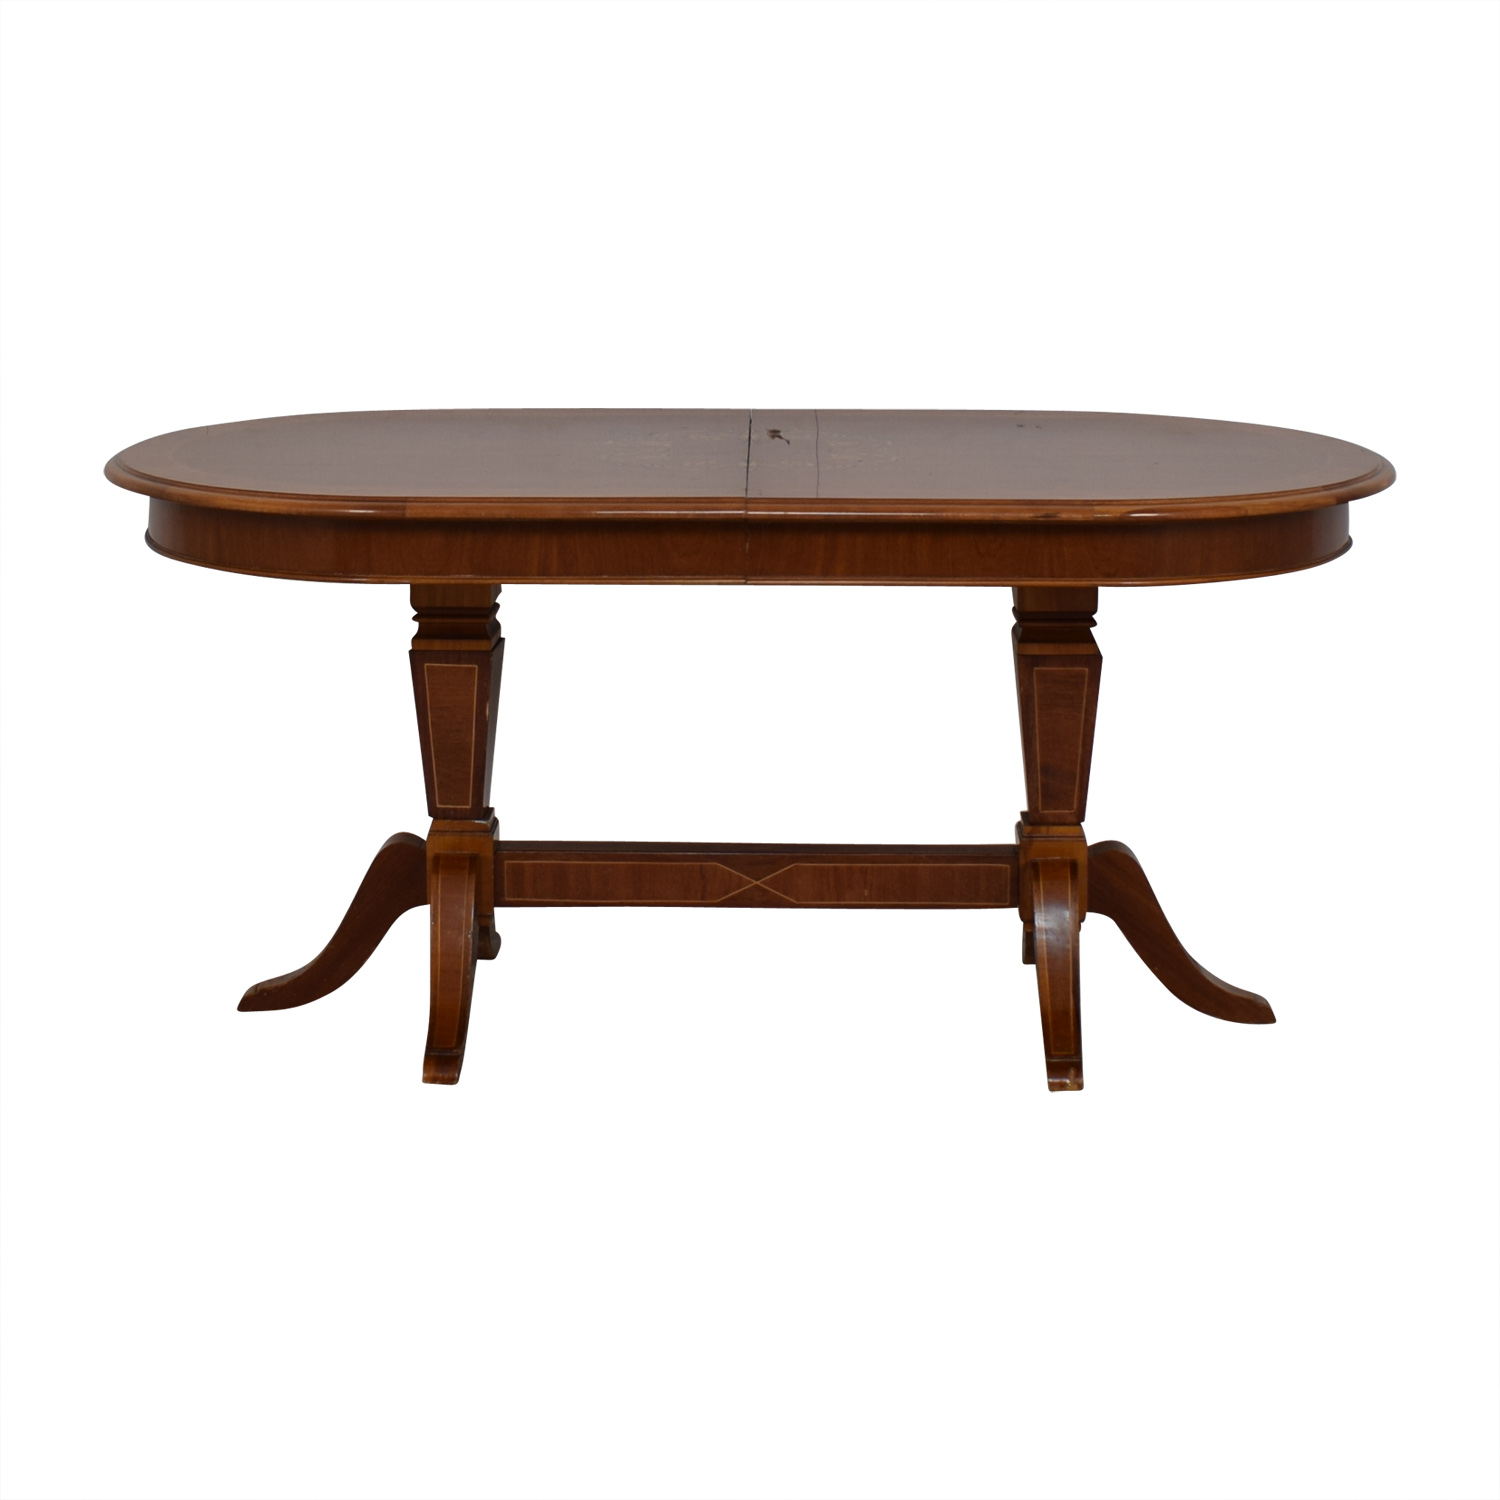 Sheraton Sheraton Extendable Dining Table nj